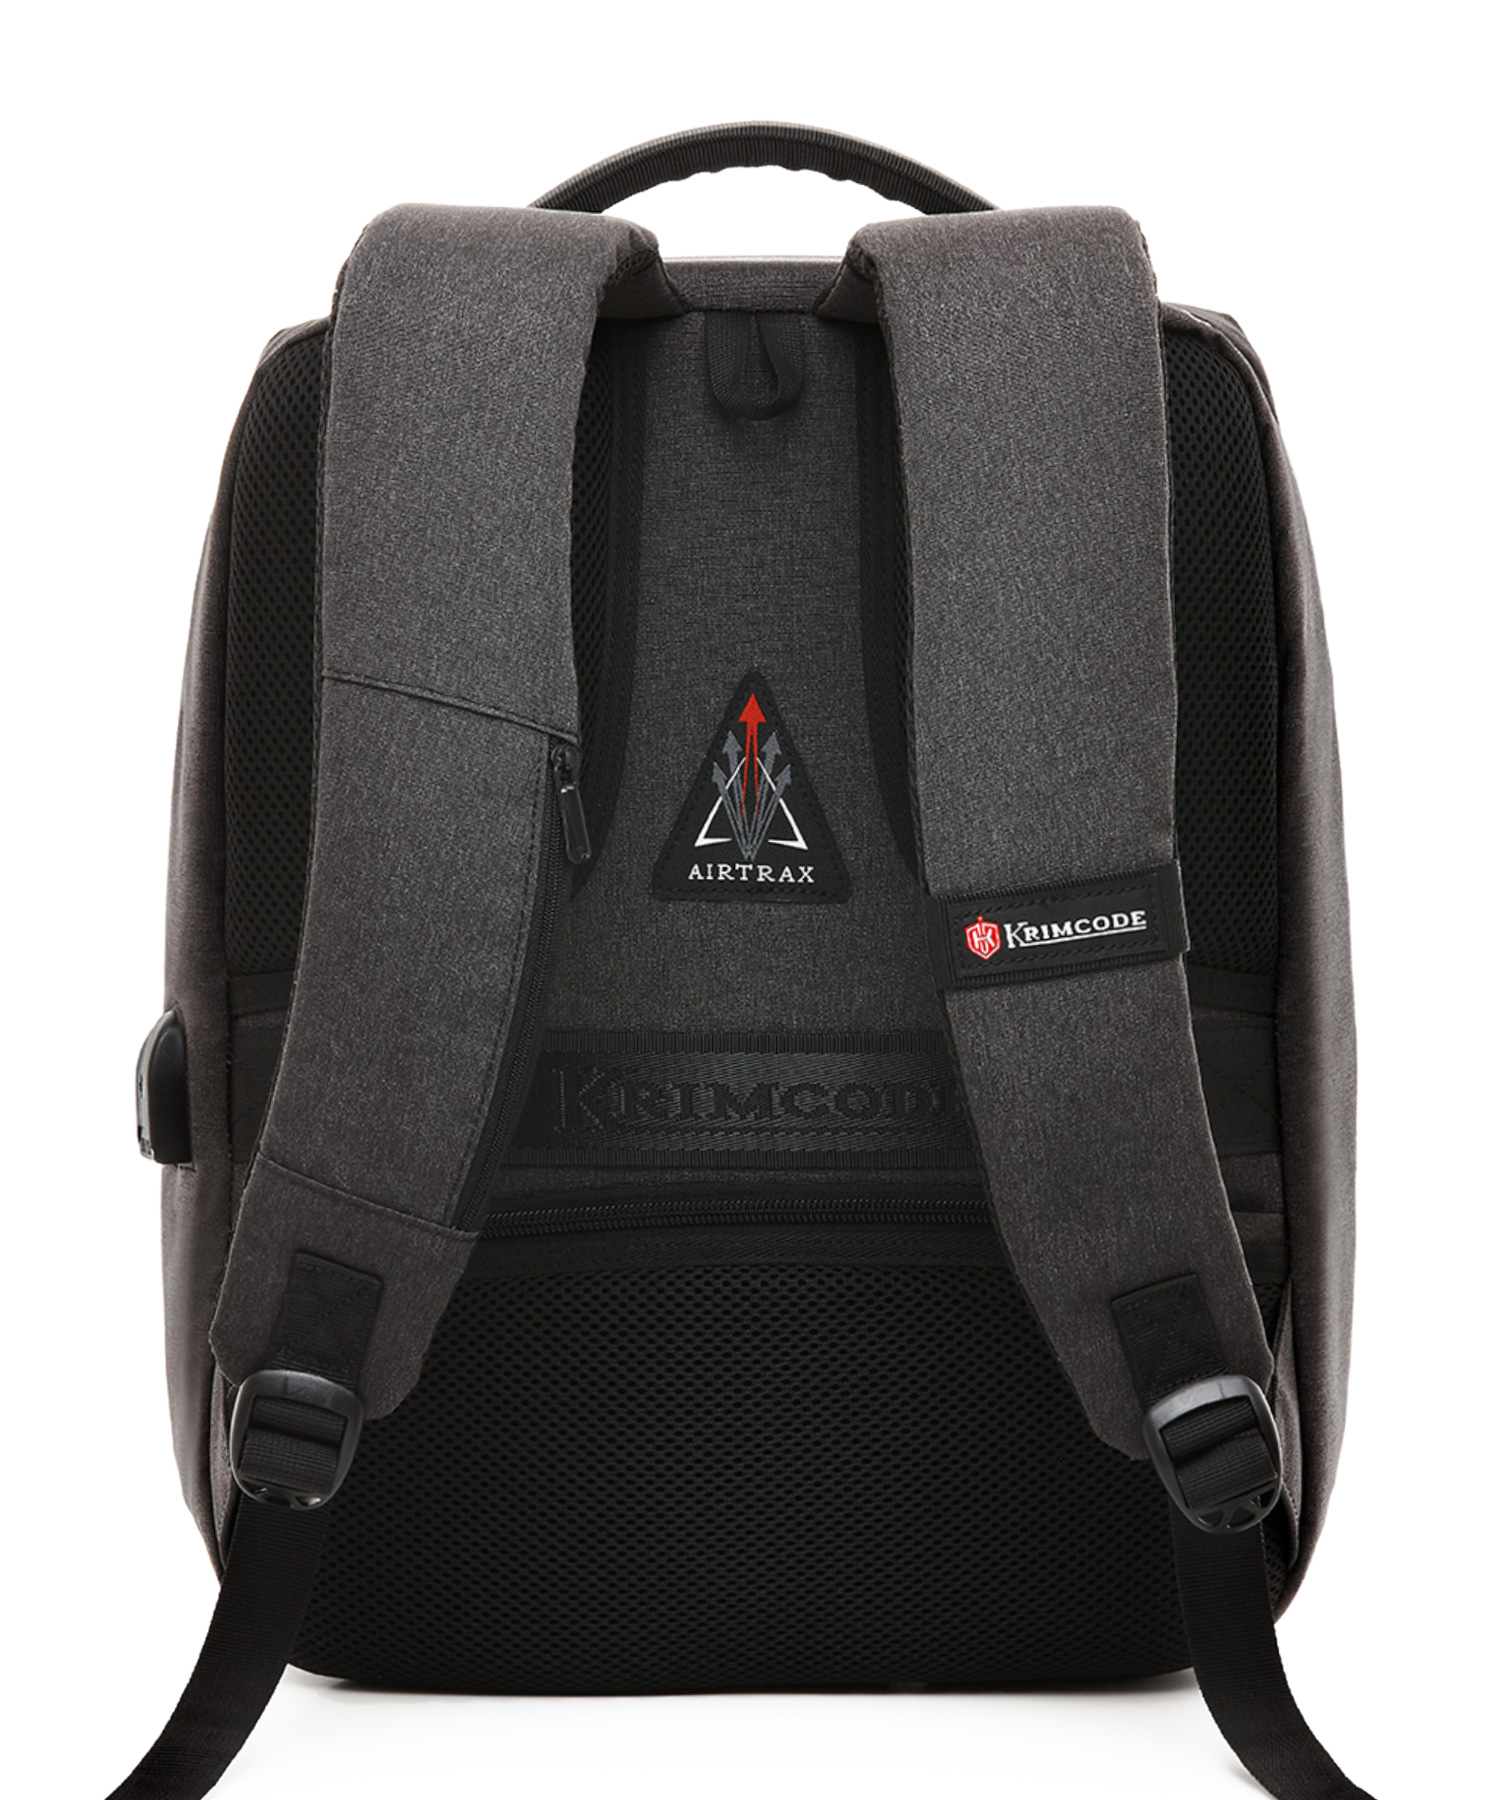 krimcode formal backpack back view